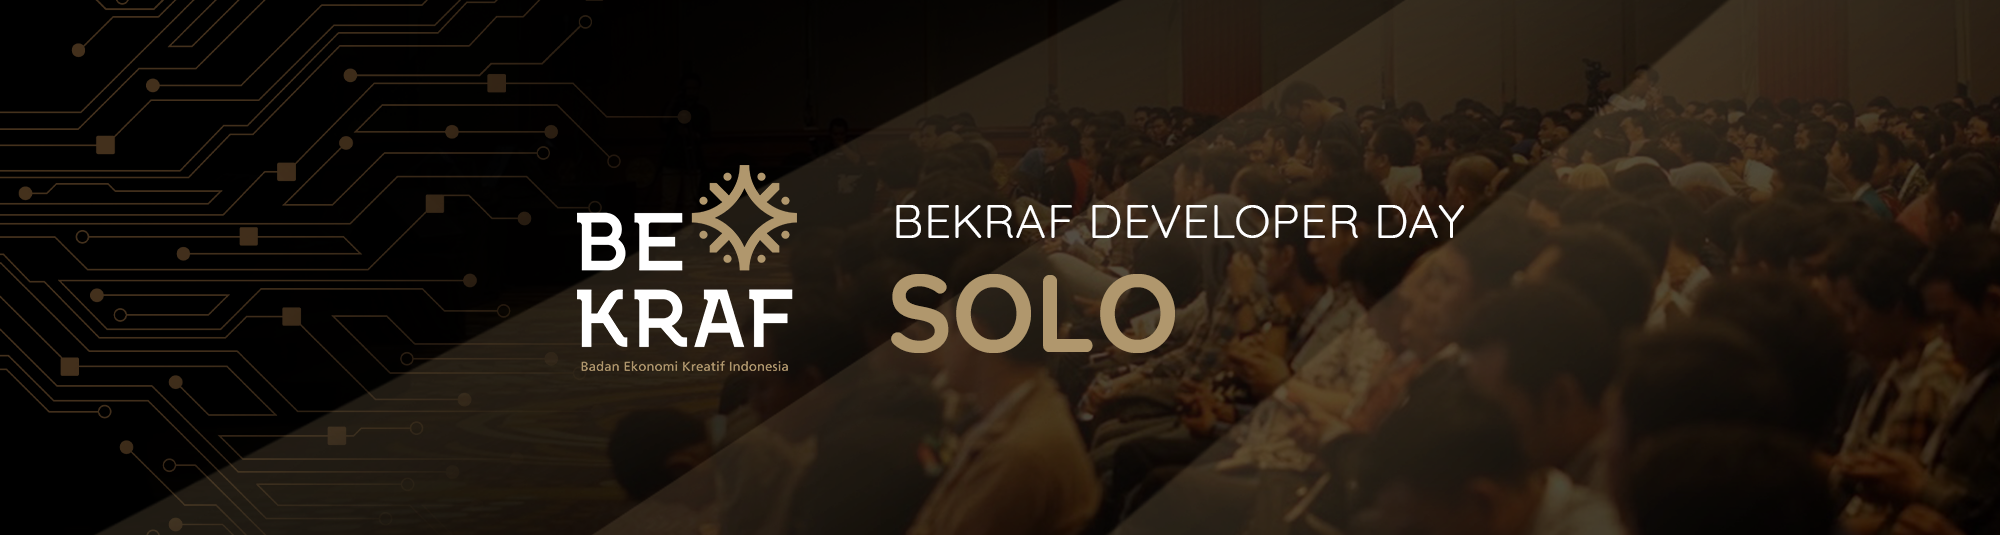 BEKRAF Developer Day 2019 - Solo